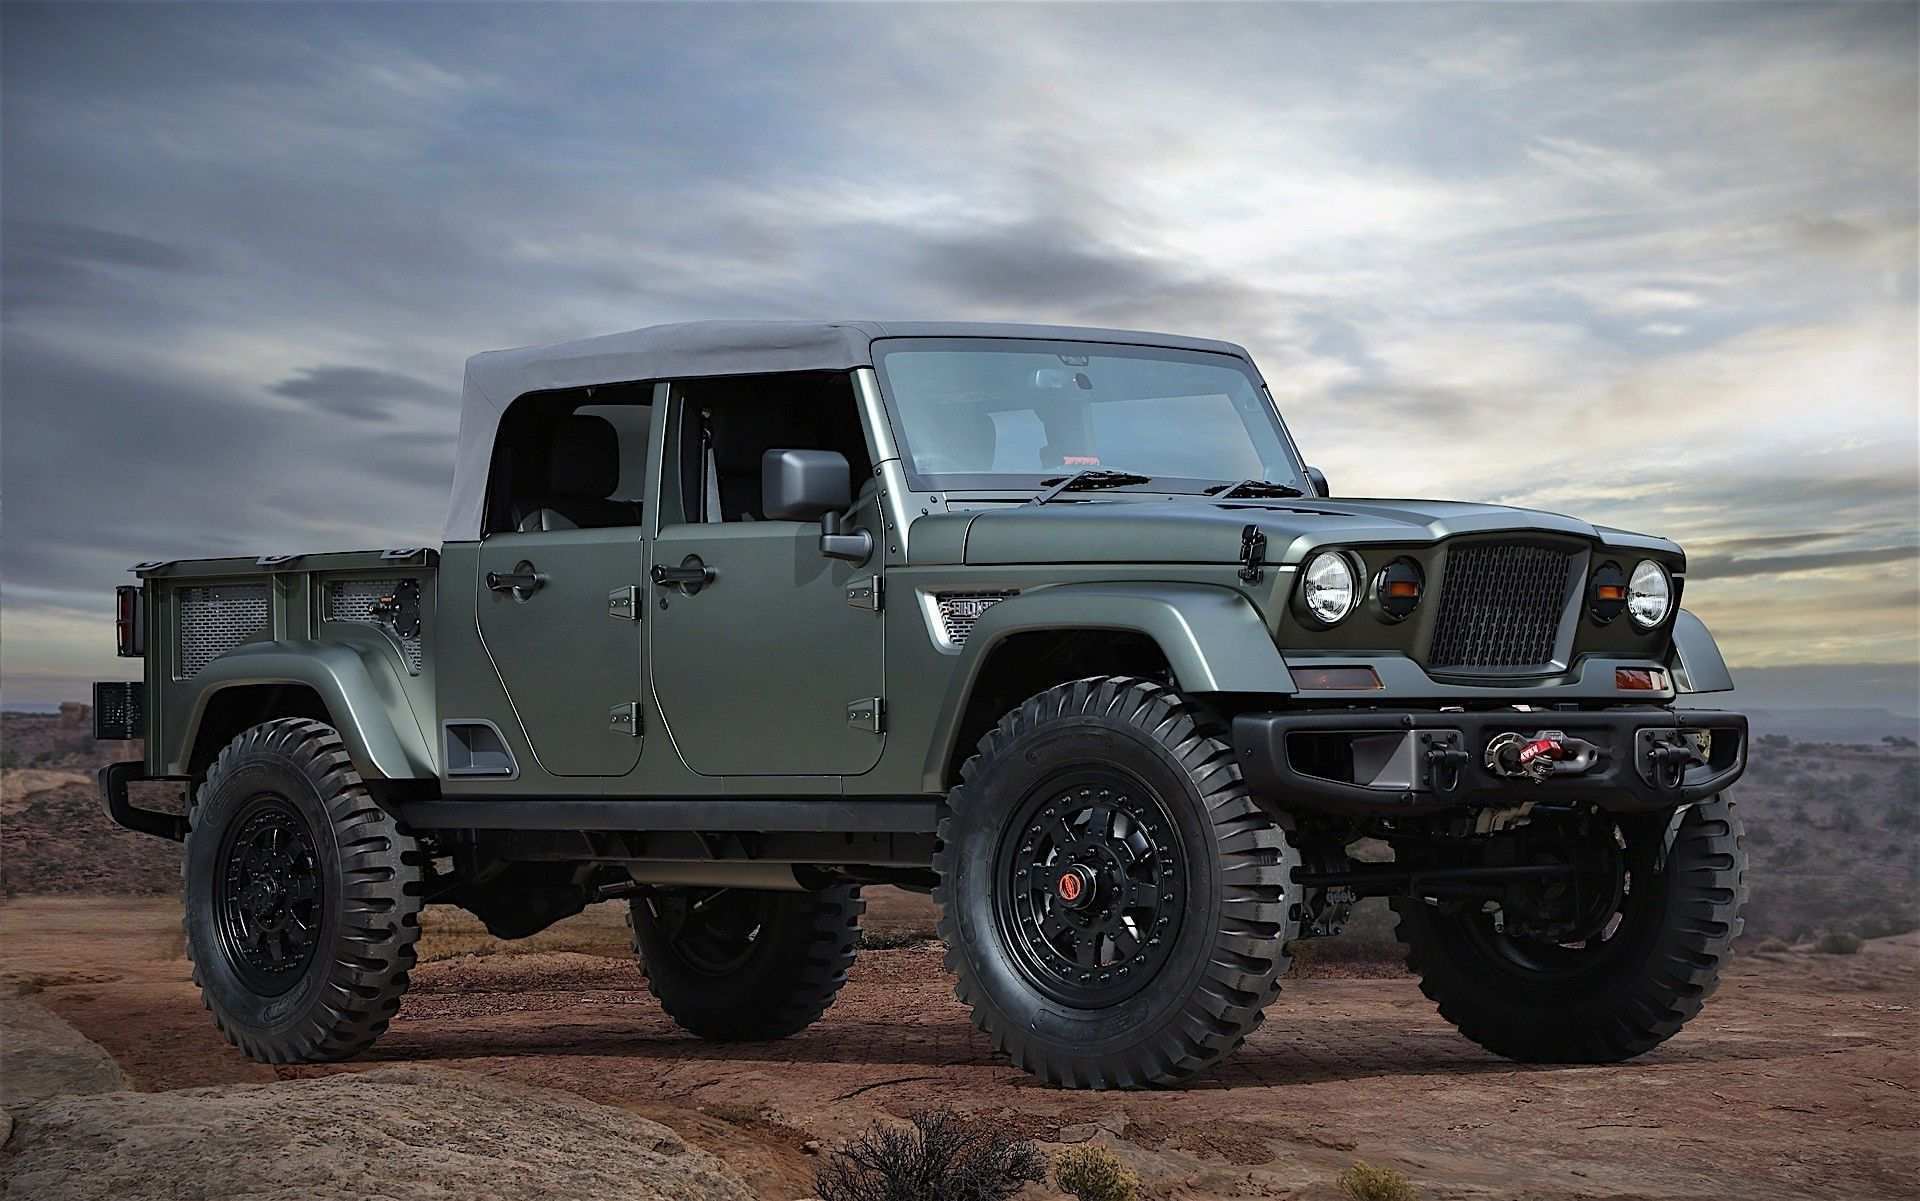 41 Great Best Jeep Wrangler Pickup 2019 Concept Redesign And Review First Drive with Best Jeep Wrangler Pickup 2019 Concept Redesign And Review